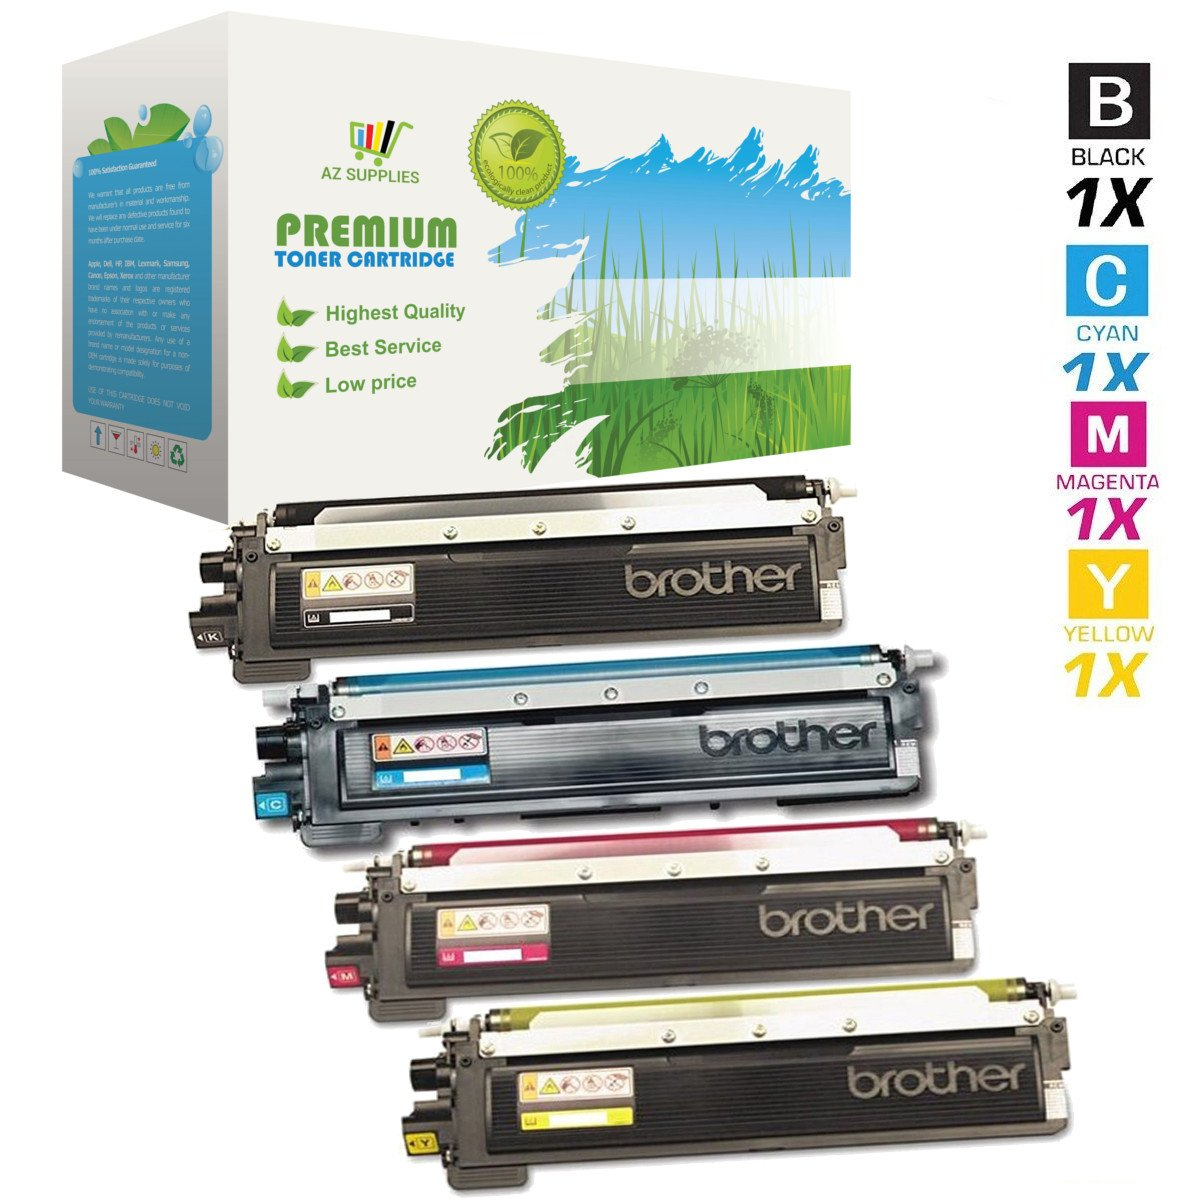 AZ Supplies Compatible Toner Cartridges Replacement for Brother TN210 for use in HL-3040CN, HL-3045CN, HL-3070CW, HL-3075CW, MFC-9010CN, MFC-9120CN, MFC-9125CN,MFC-9320CW,MFC-9325CW (B,C,Y,M, 4-Pack).